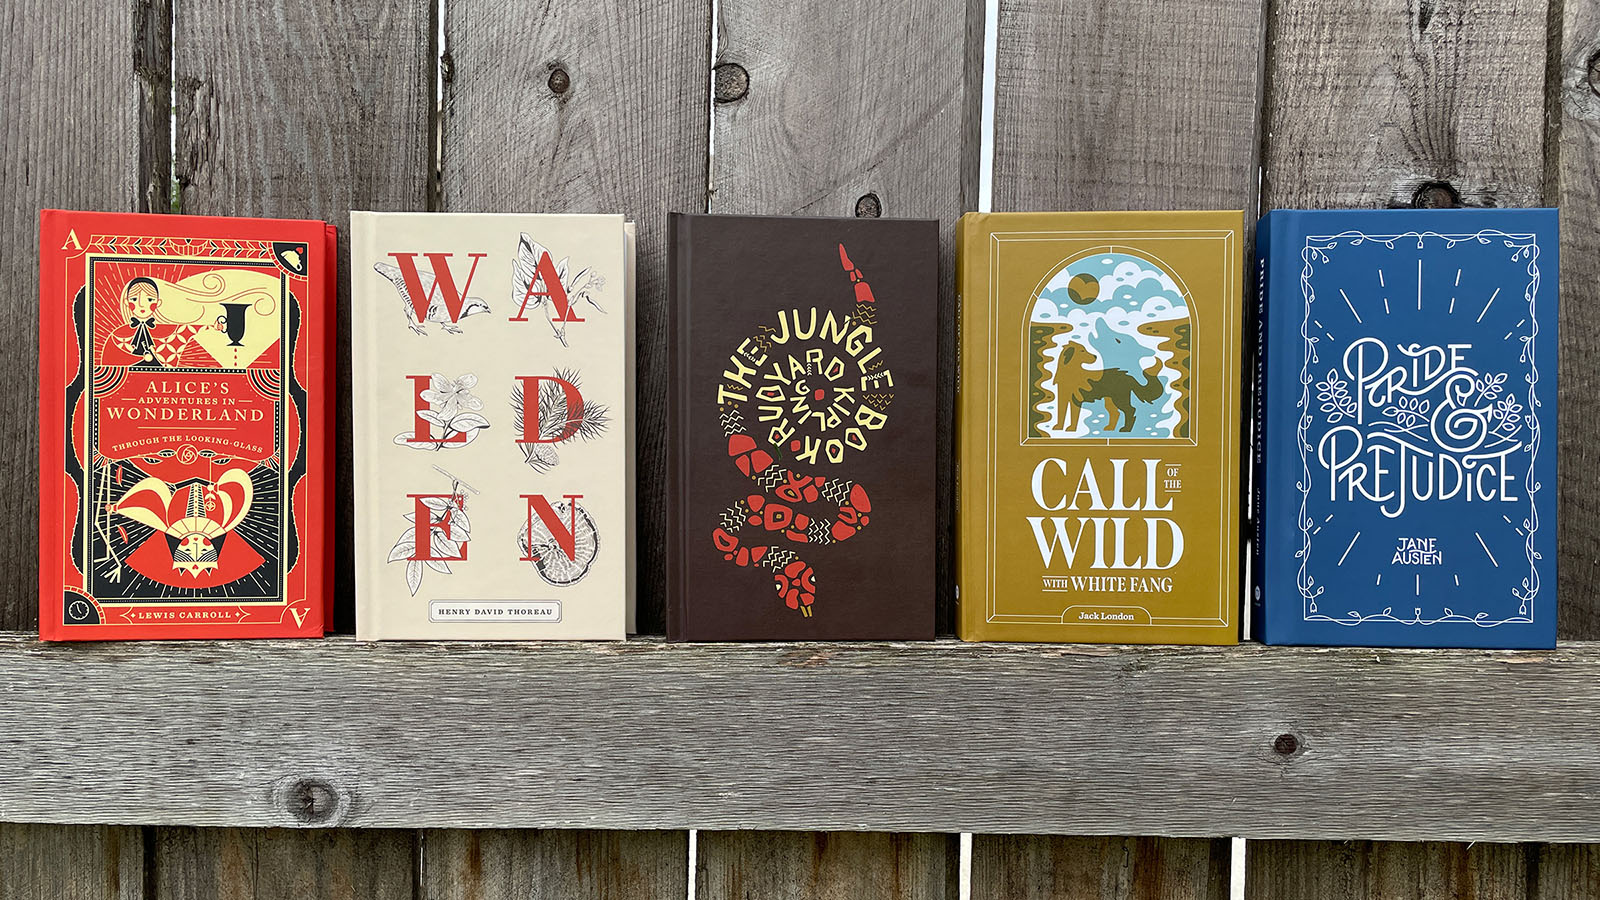 Five classic novels with custom illustrated covers sit on a fence. From left to right: Alice's Adventures in Wonderland, Walden, The Jungle Book, Call of the Wild, Pride and Prejudice.